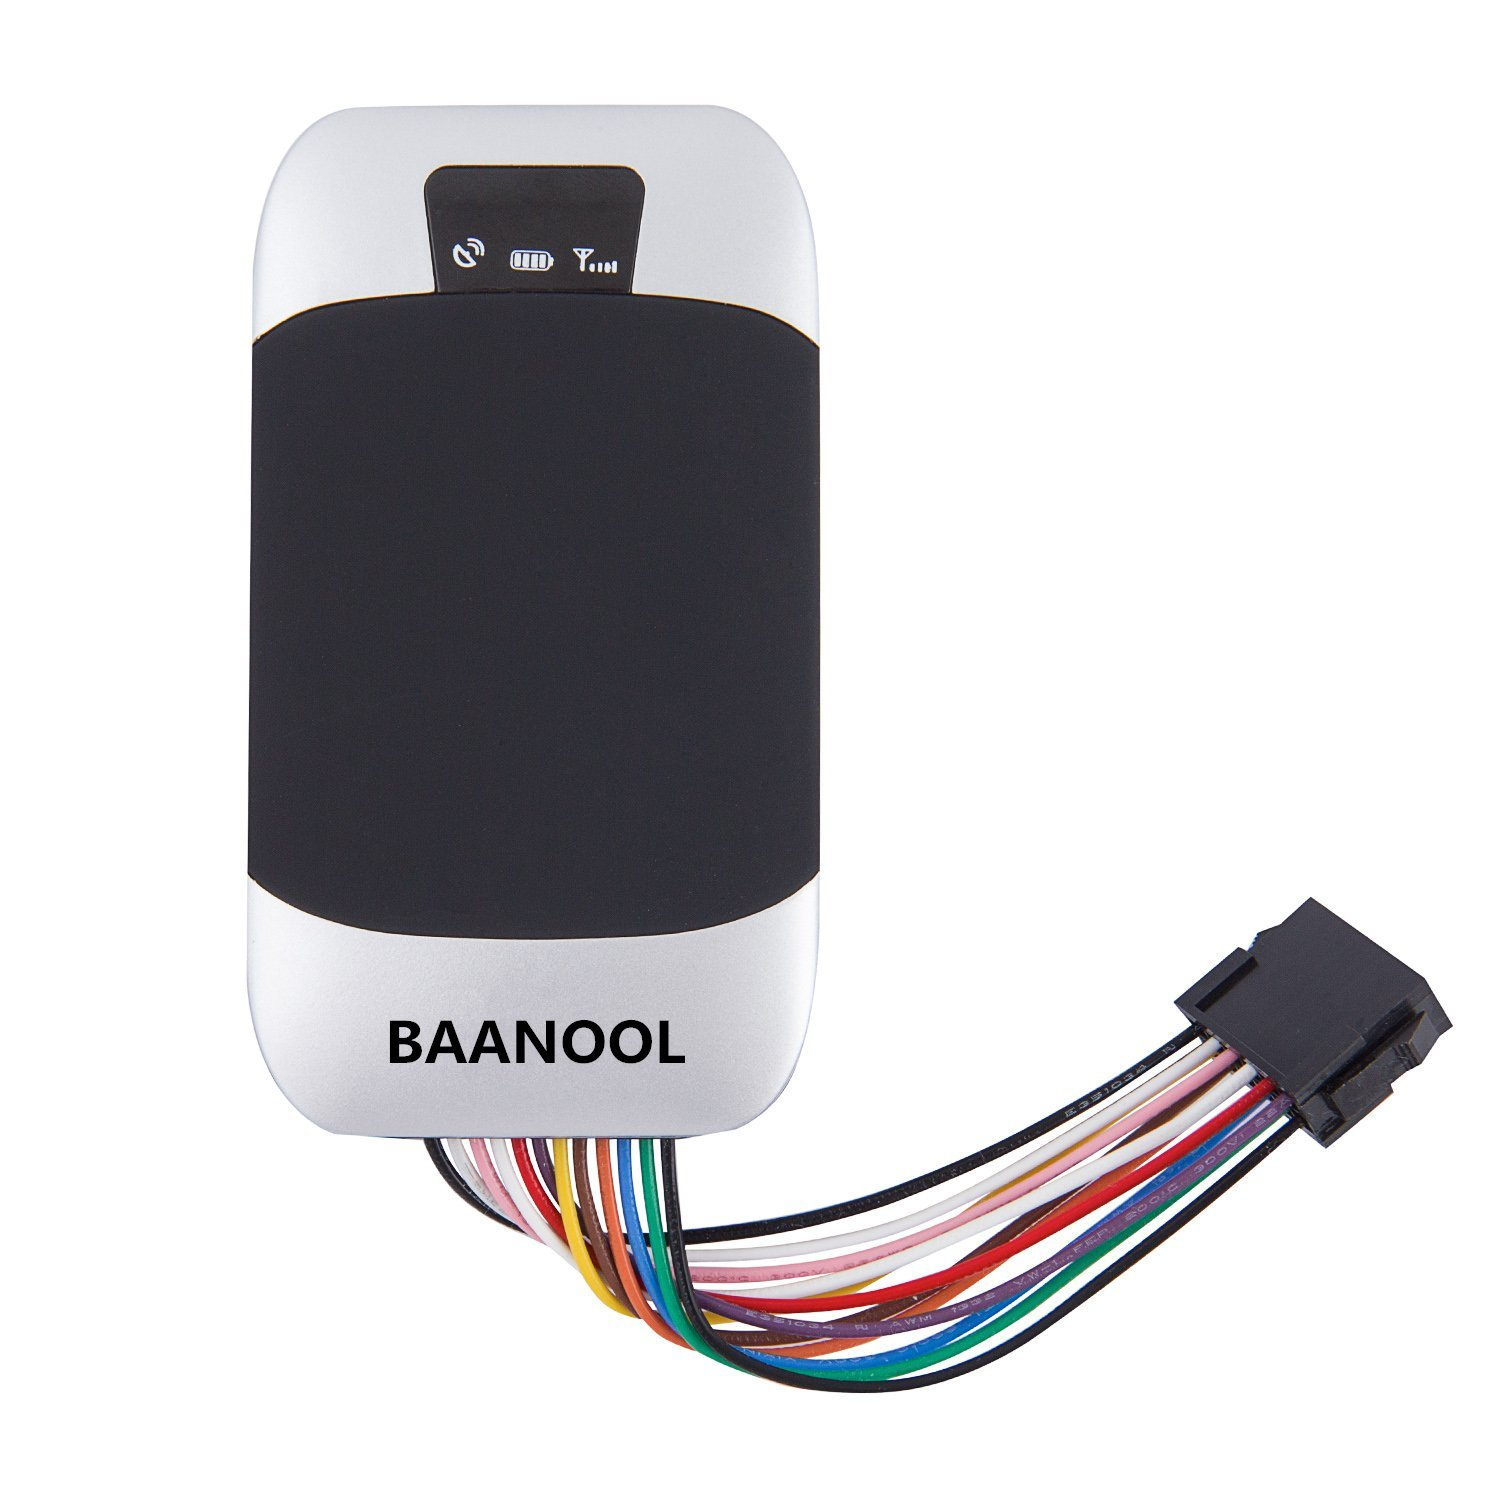 BAANOOL Waterproof Real Time Car GPS Tracker GPS/GPRS/GSM Vehicle Tracker GPS Locator Portable GPS Tracking Devices Anti-Theft Car Tracking Alarm System 303F